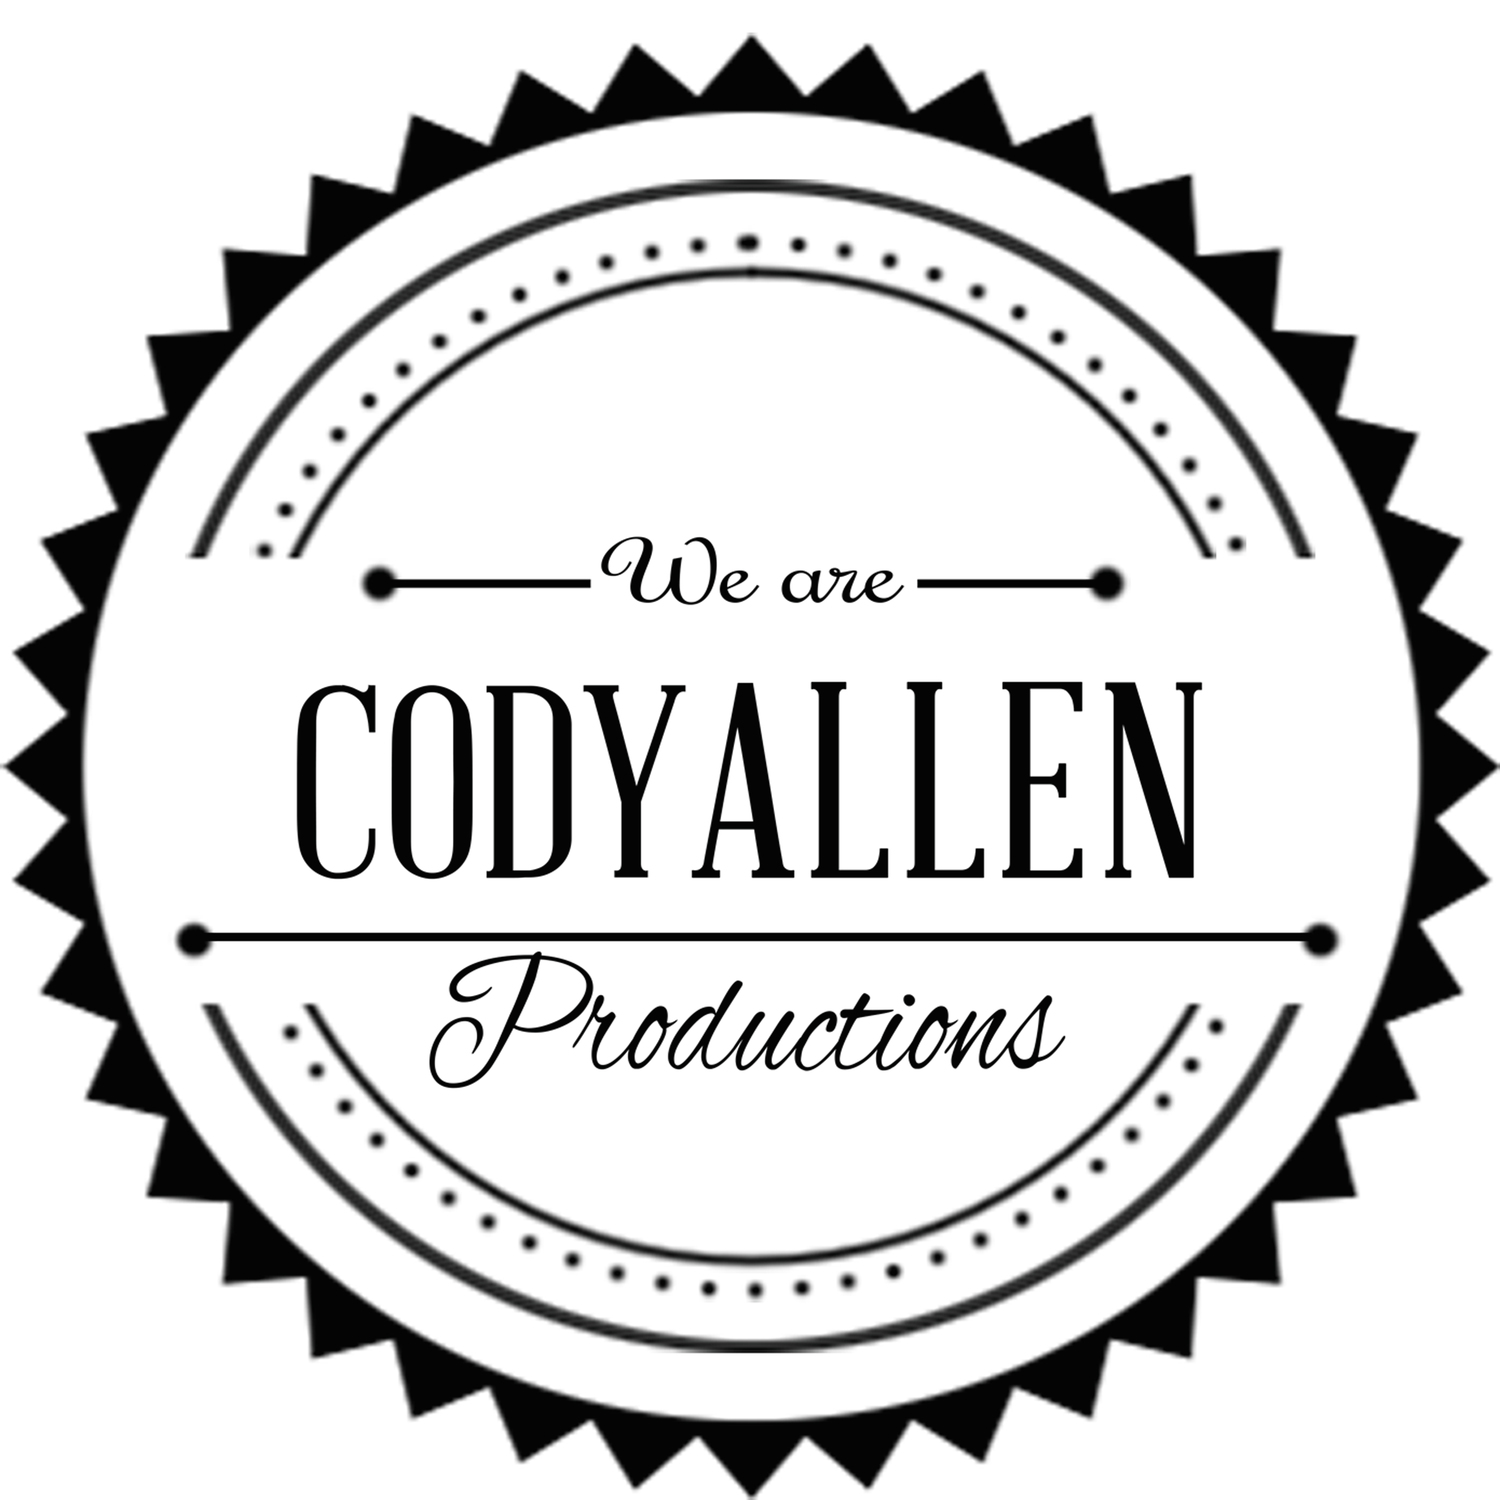 CODY ALLEN PRODUCTIONS